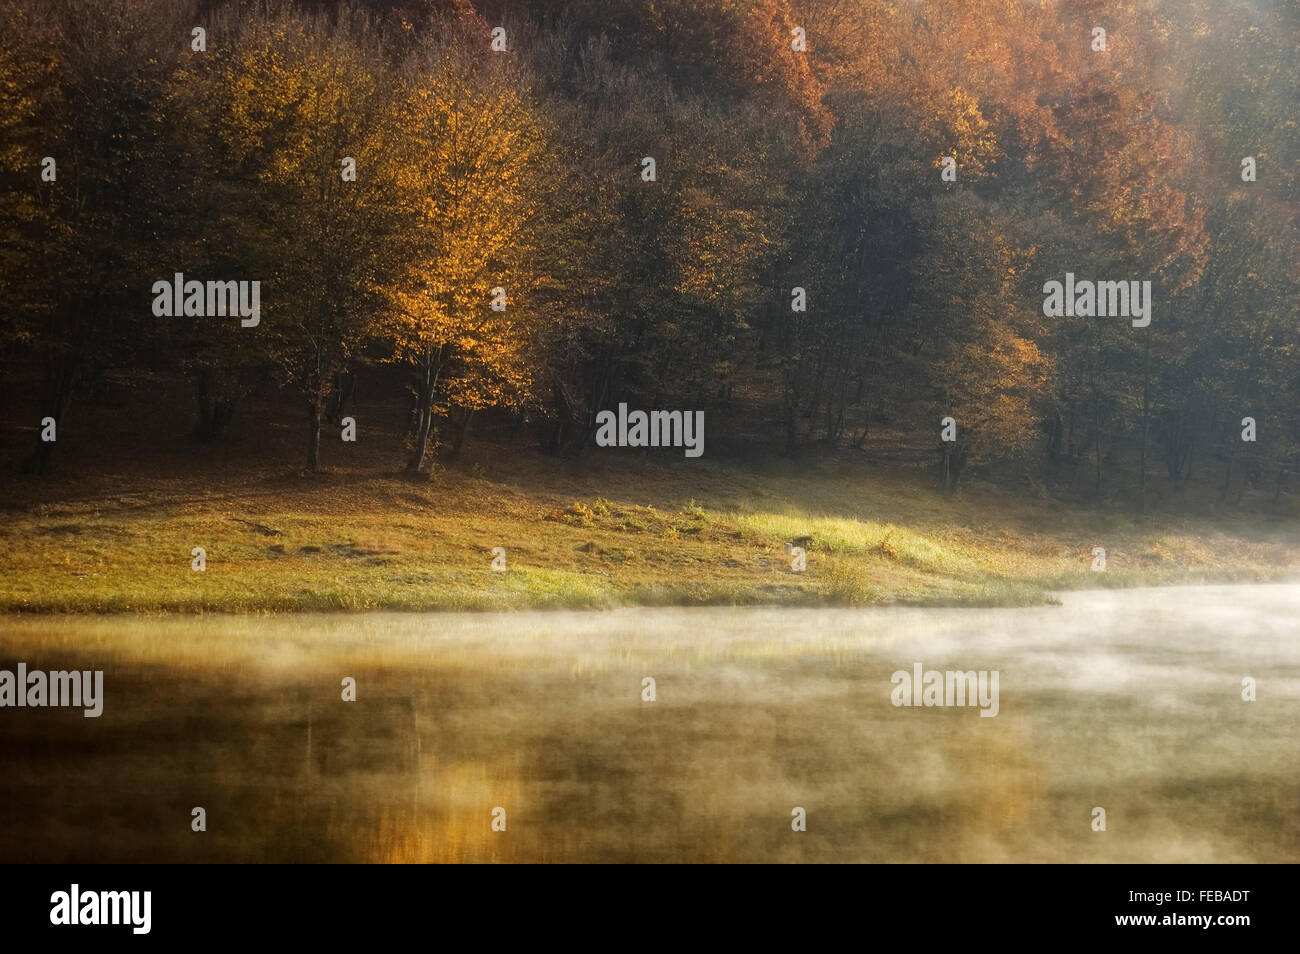 autumn morning at a forest lake with fog rising and warm colors - Stock Image